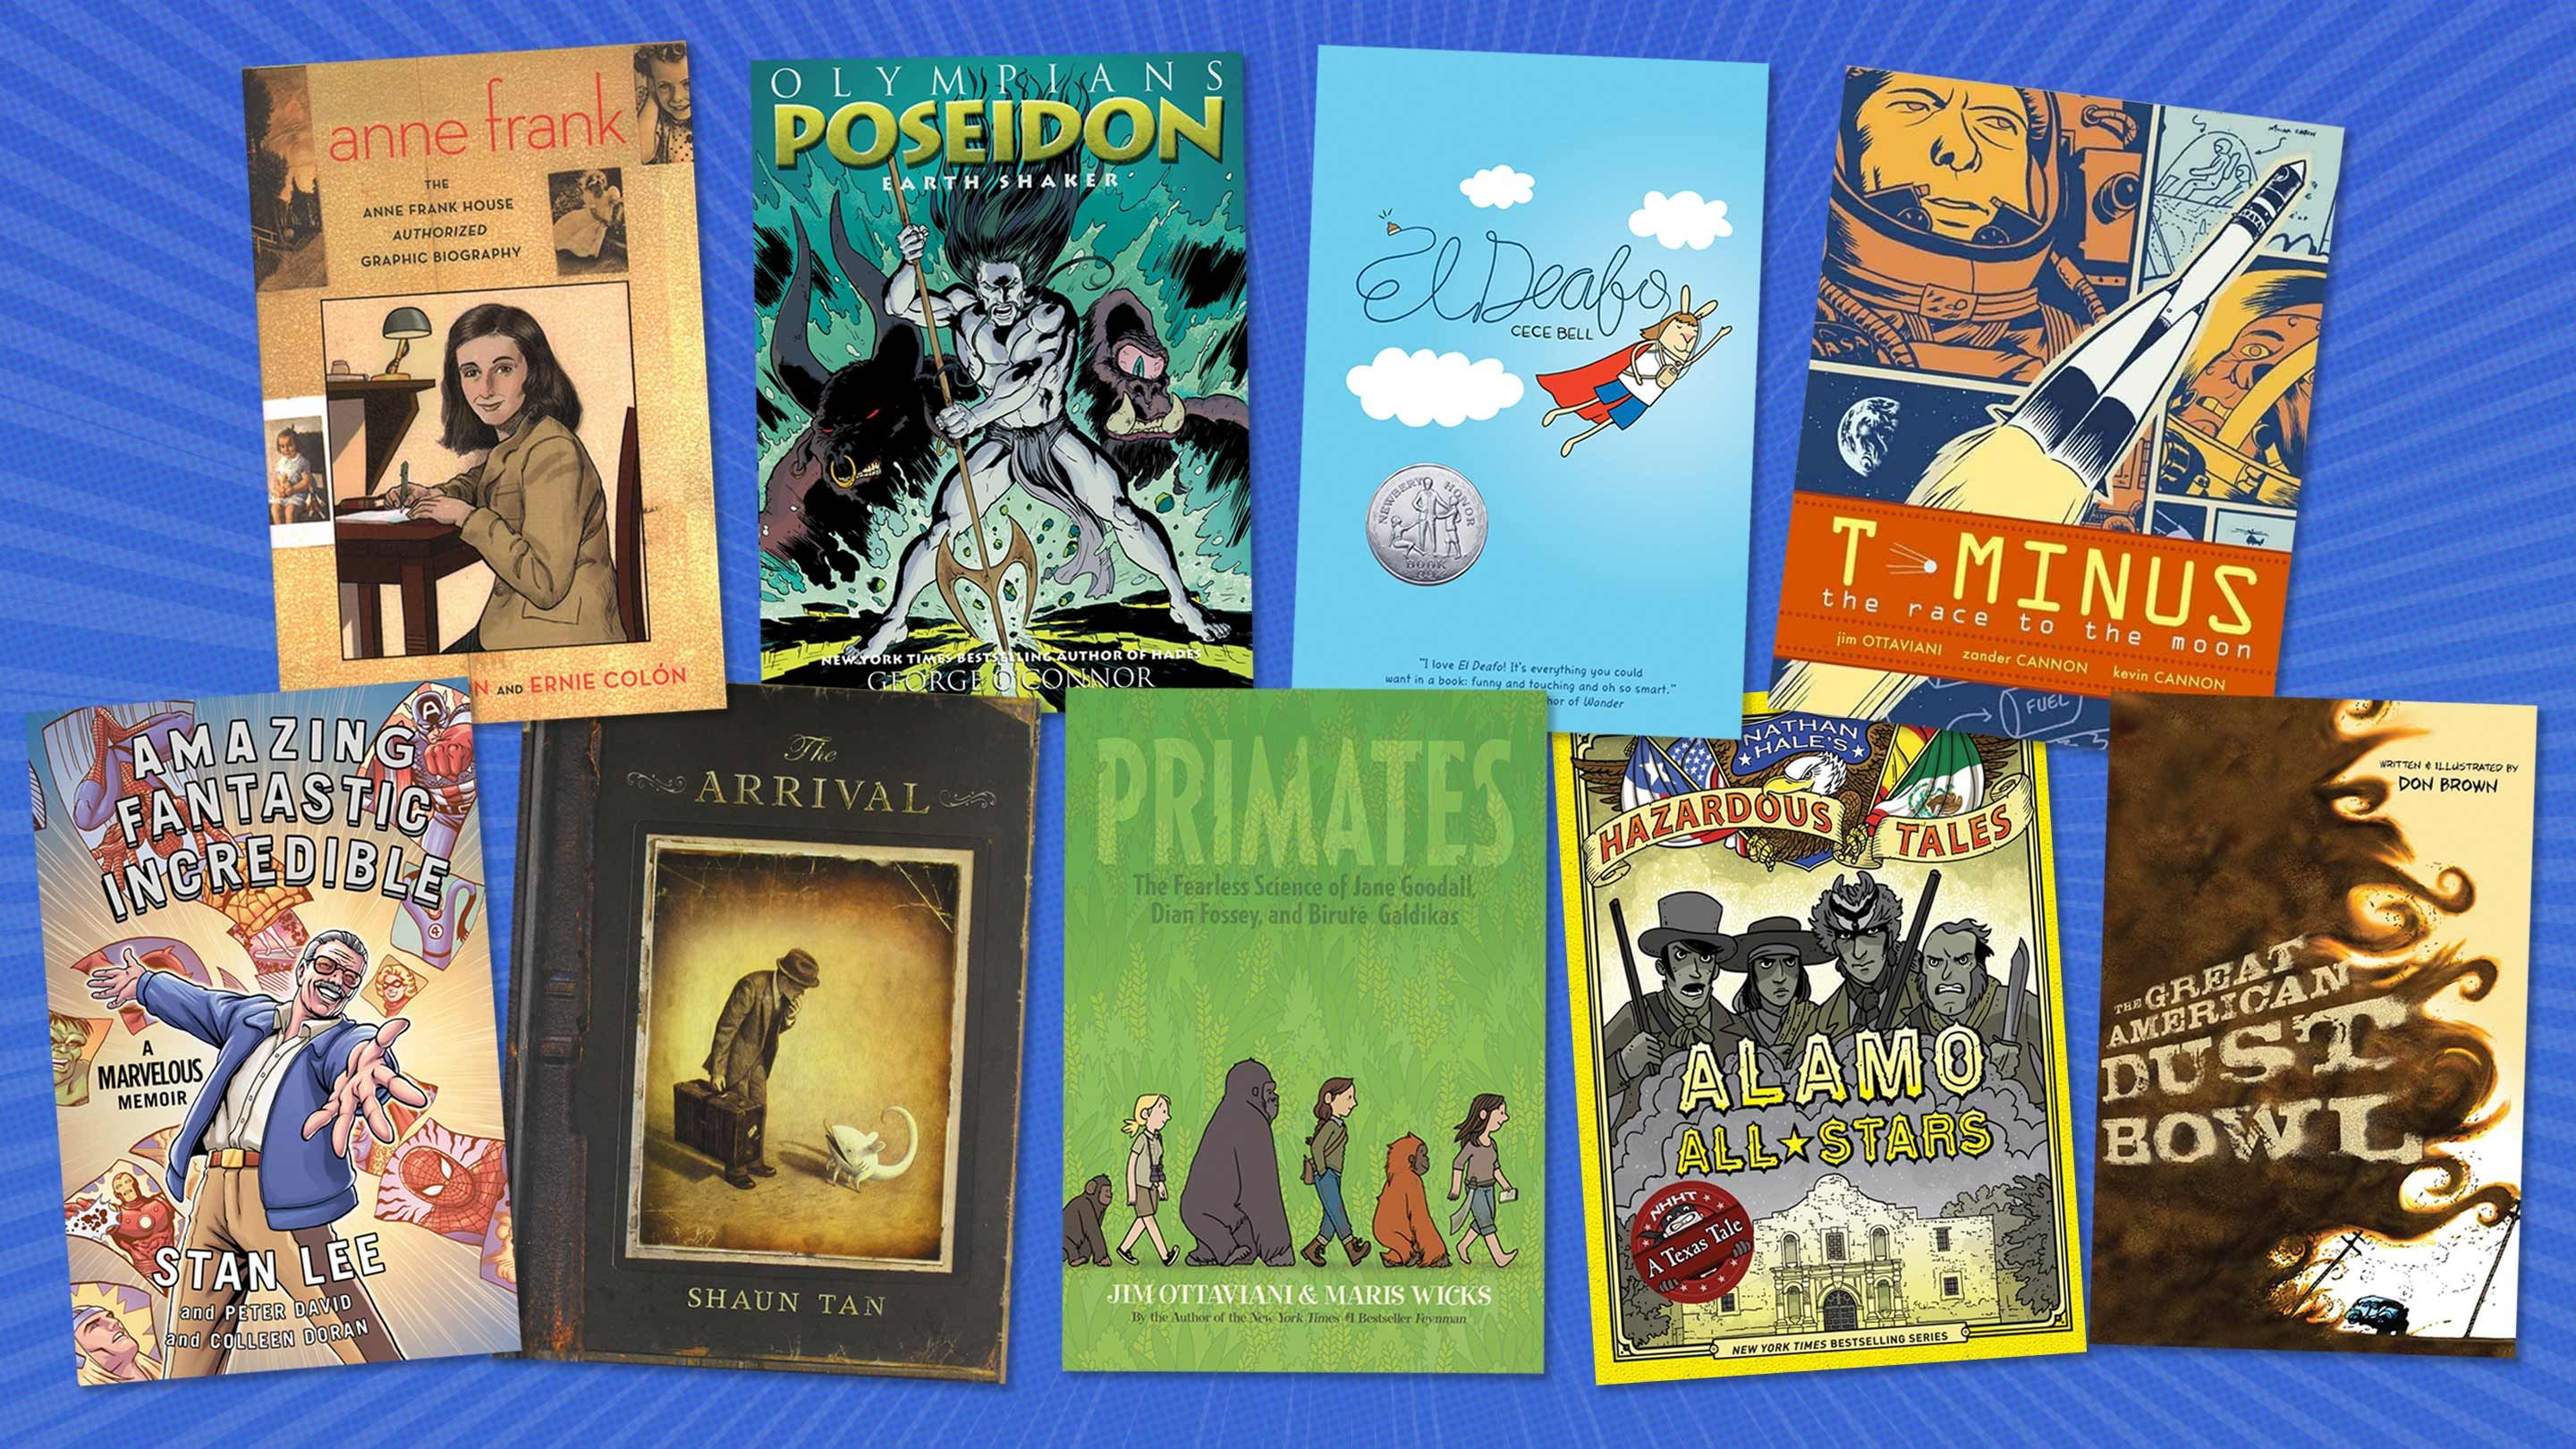 Cover images of the nine graphic novels in the article